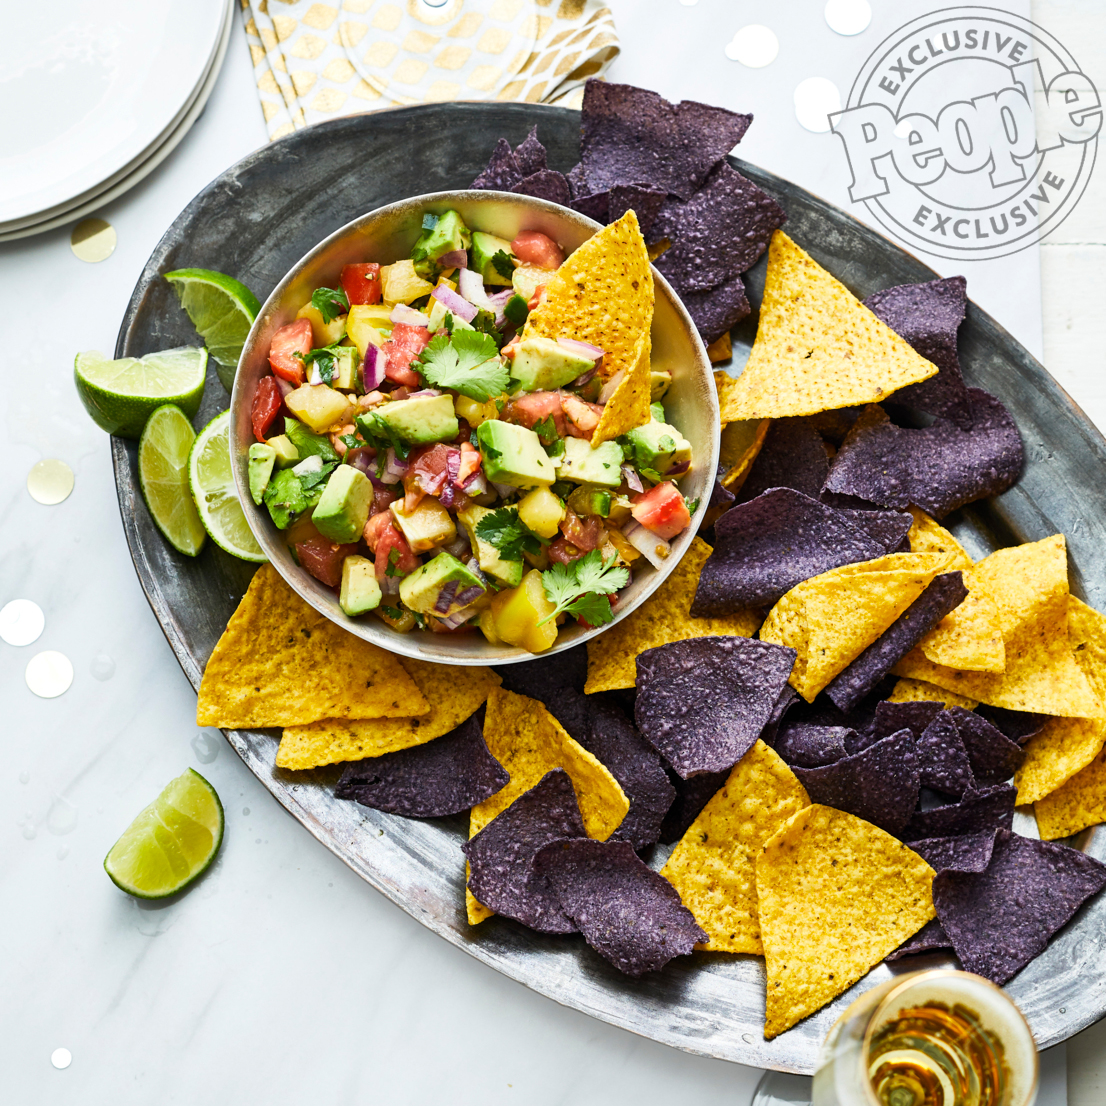 People Food - Red Carpet Issue - Elizabeth HeiskellTomato & Avocado Salsa with Blue Corn Chips